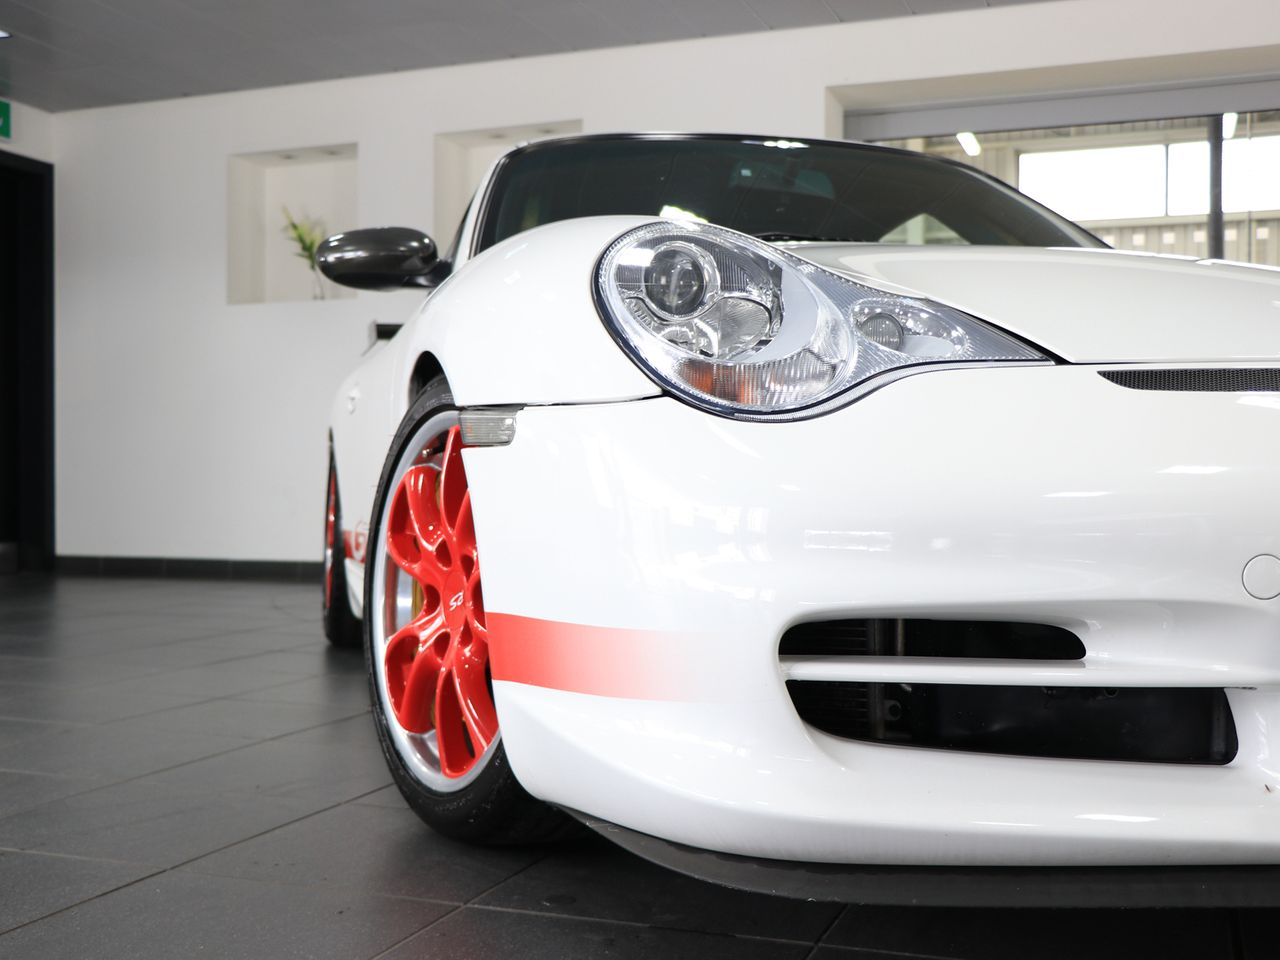 911 (996) GT3 RS image 38